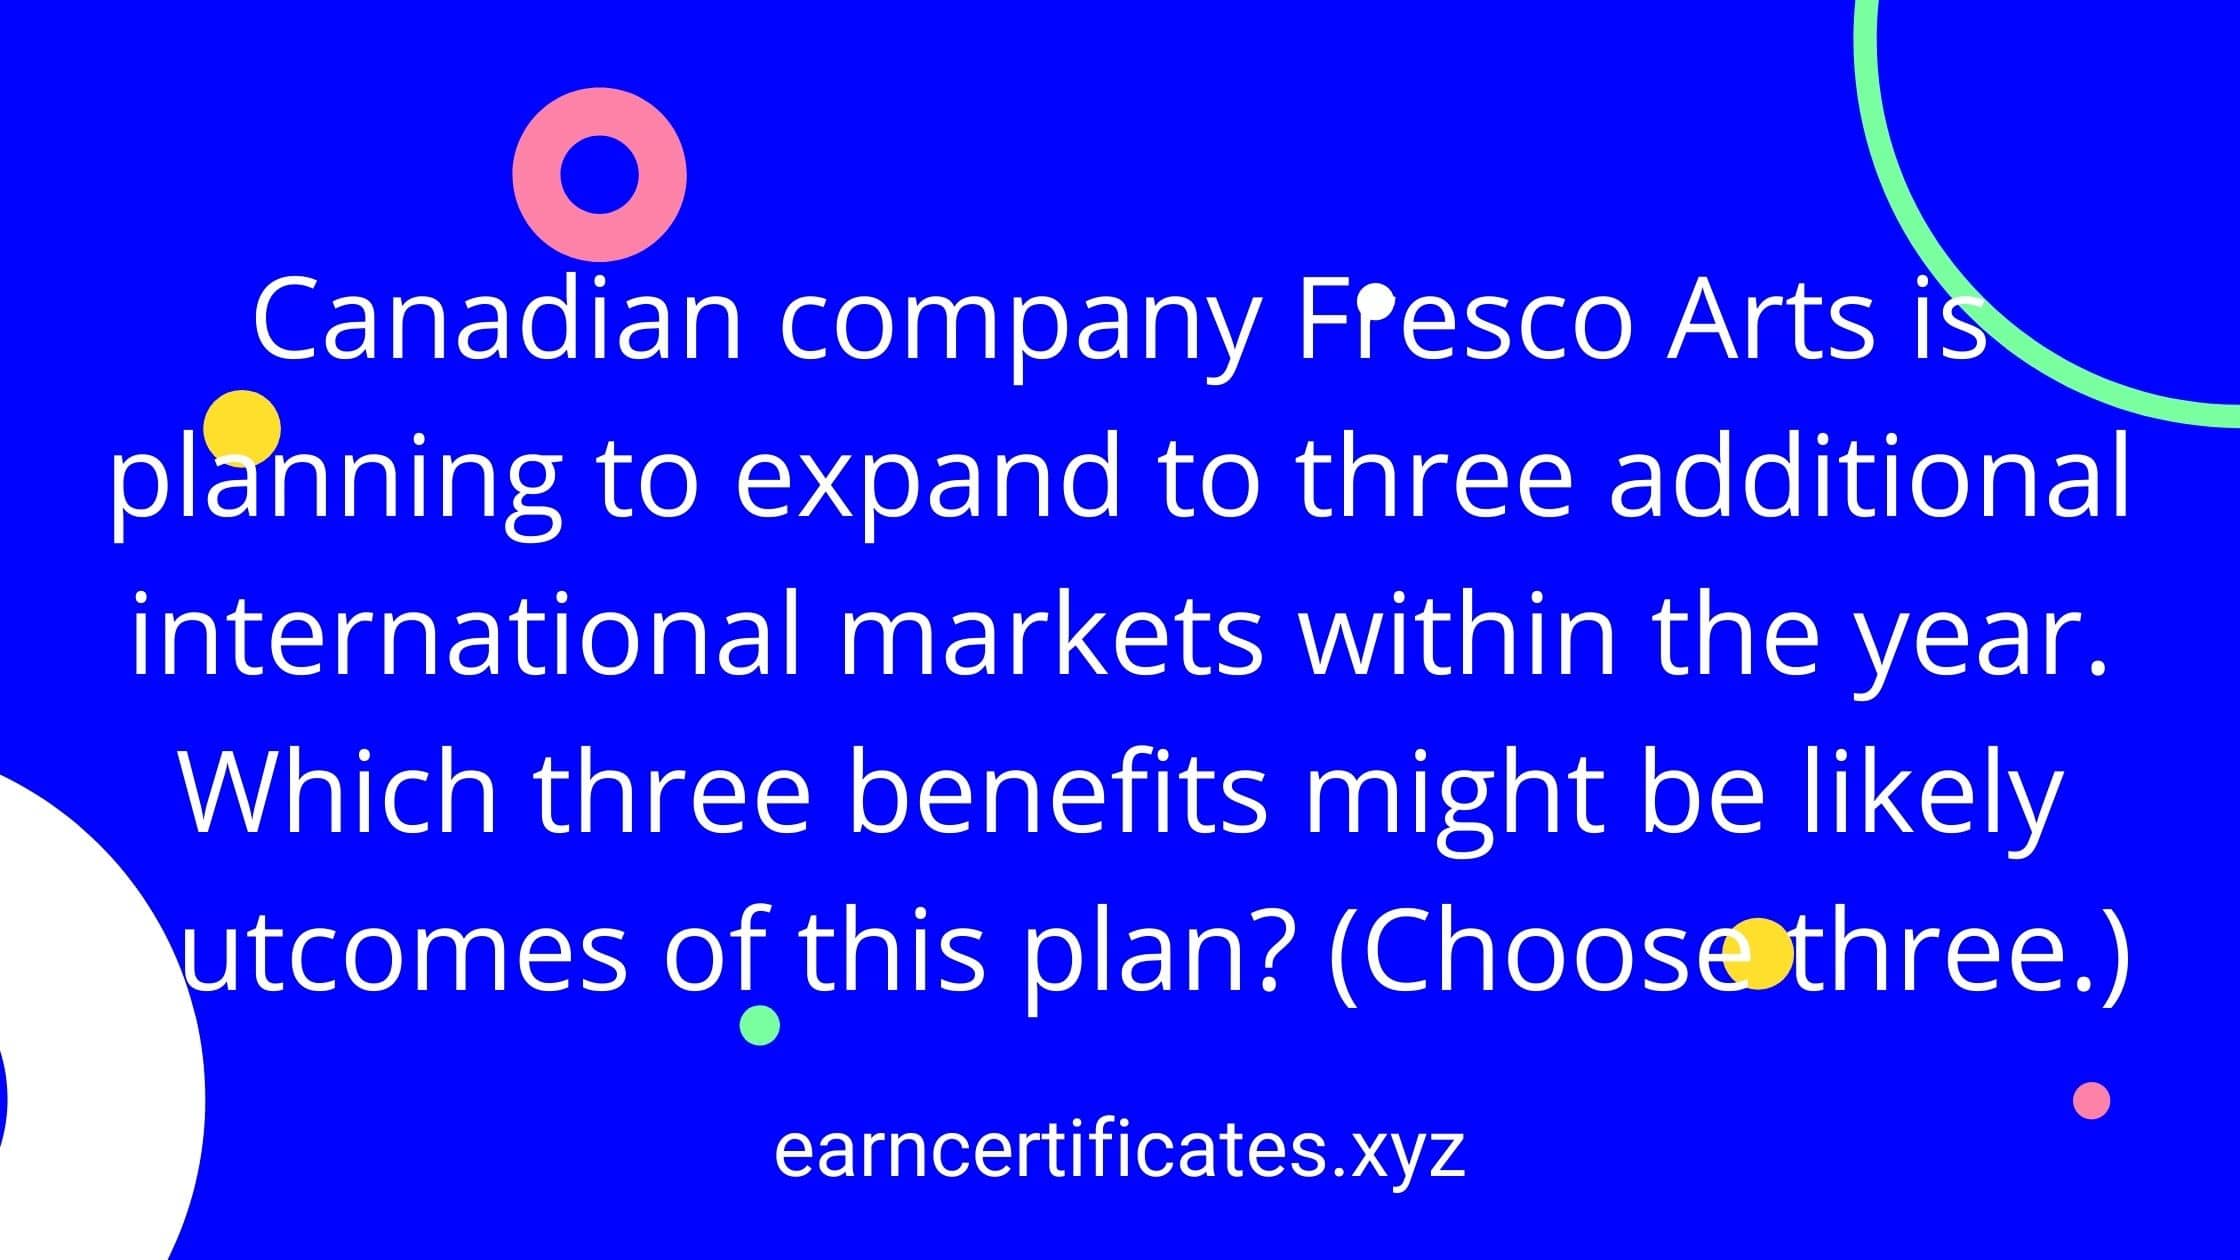 Canadian company Fresco Arts is planning to expand to three additional international markets within the year. Which three benefits might be likely outcomes of this plan? (Choose three.)